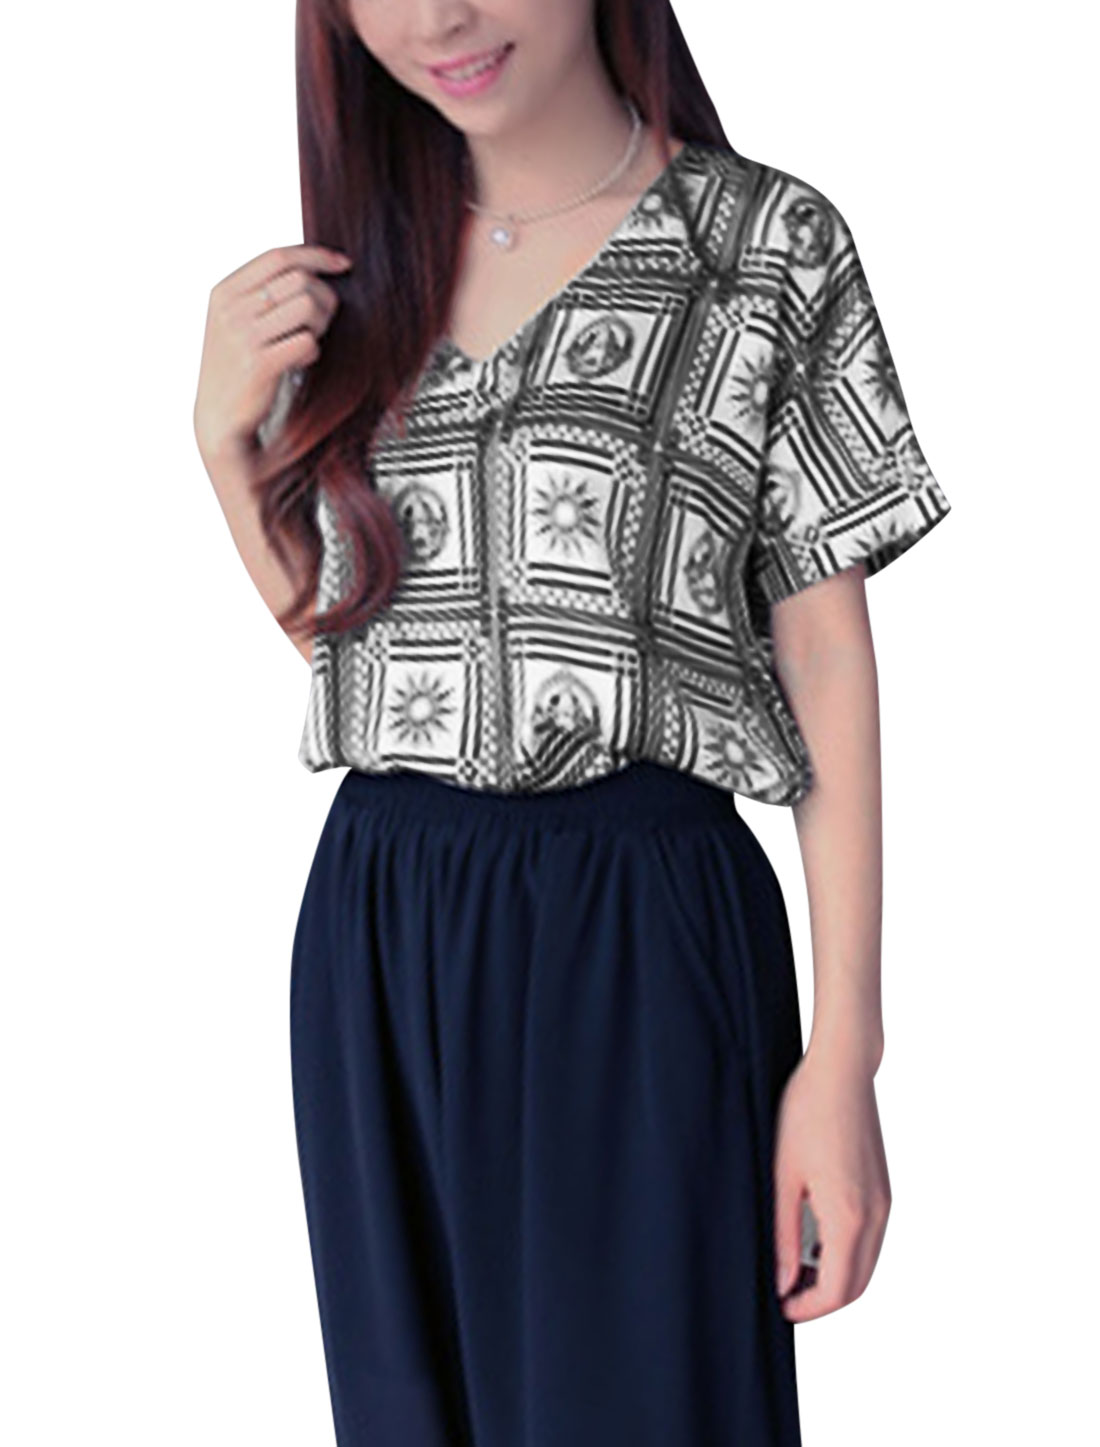 Lady's V Neck Novelty Prints Casual Short Sleeve Chiffon Top Black White XS